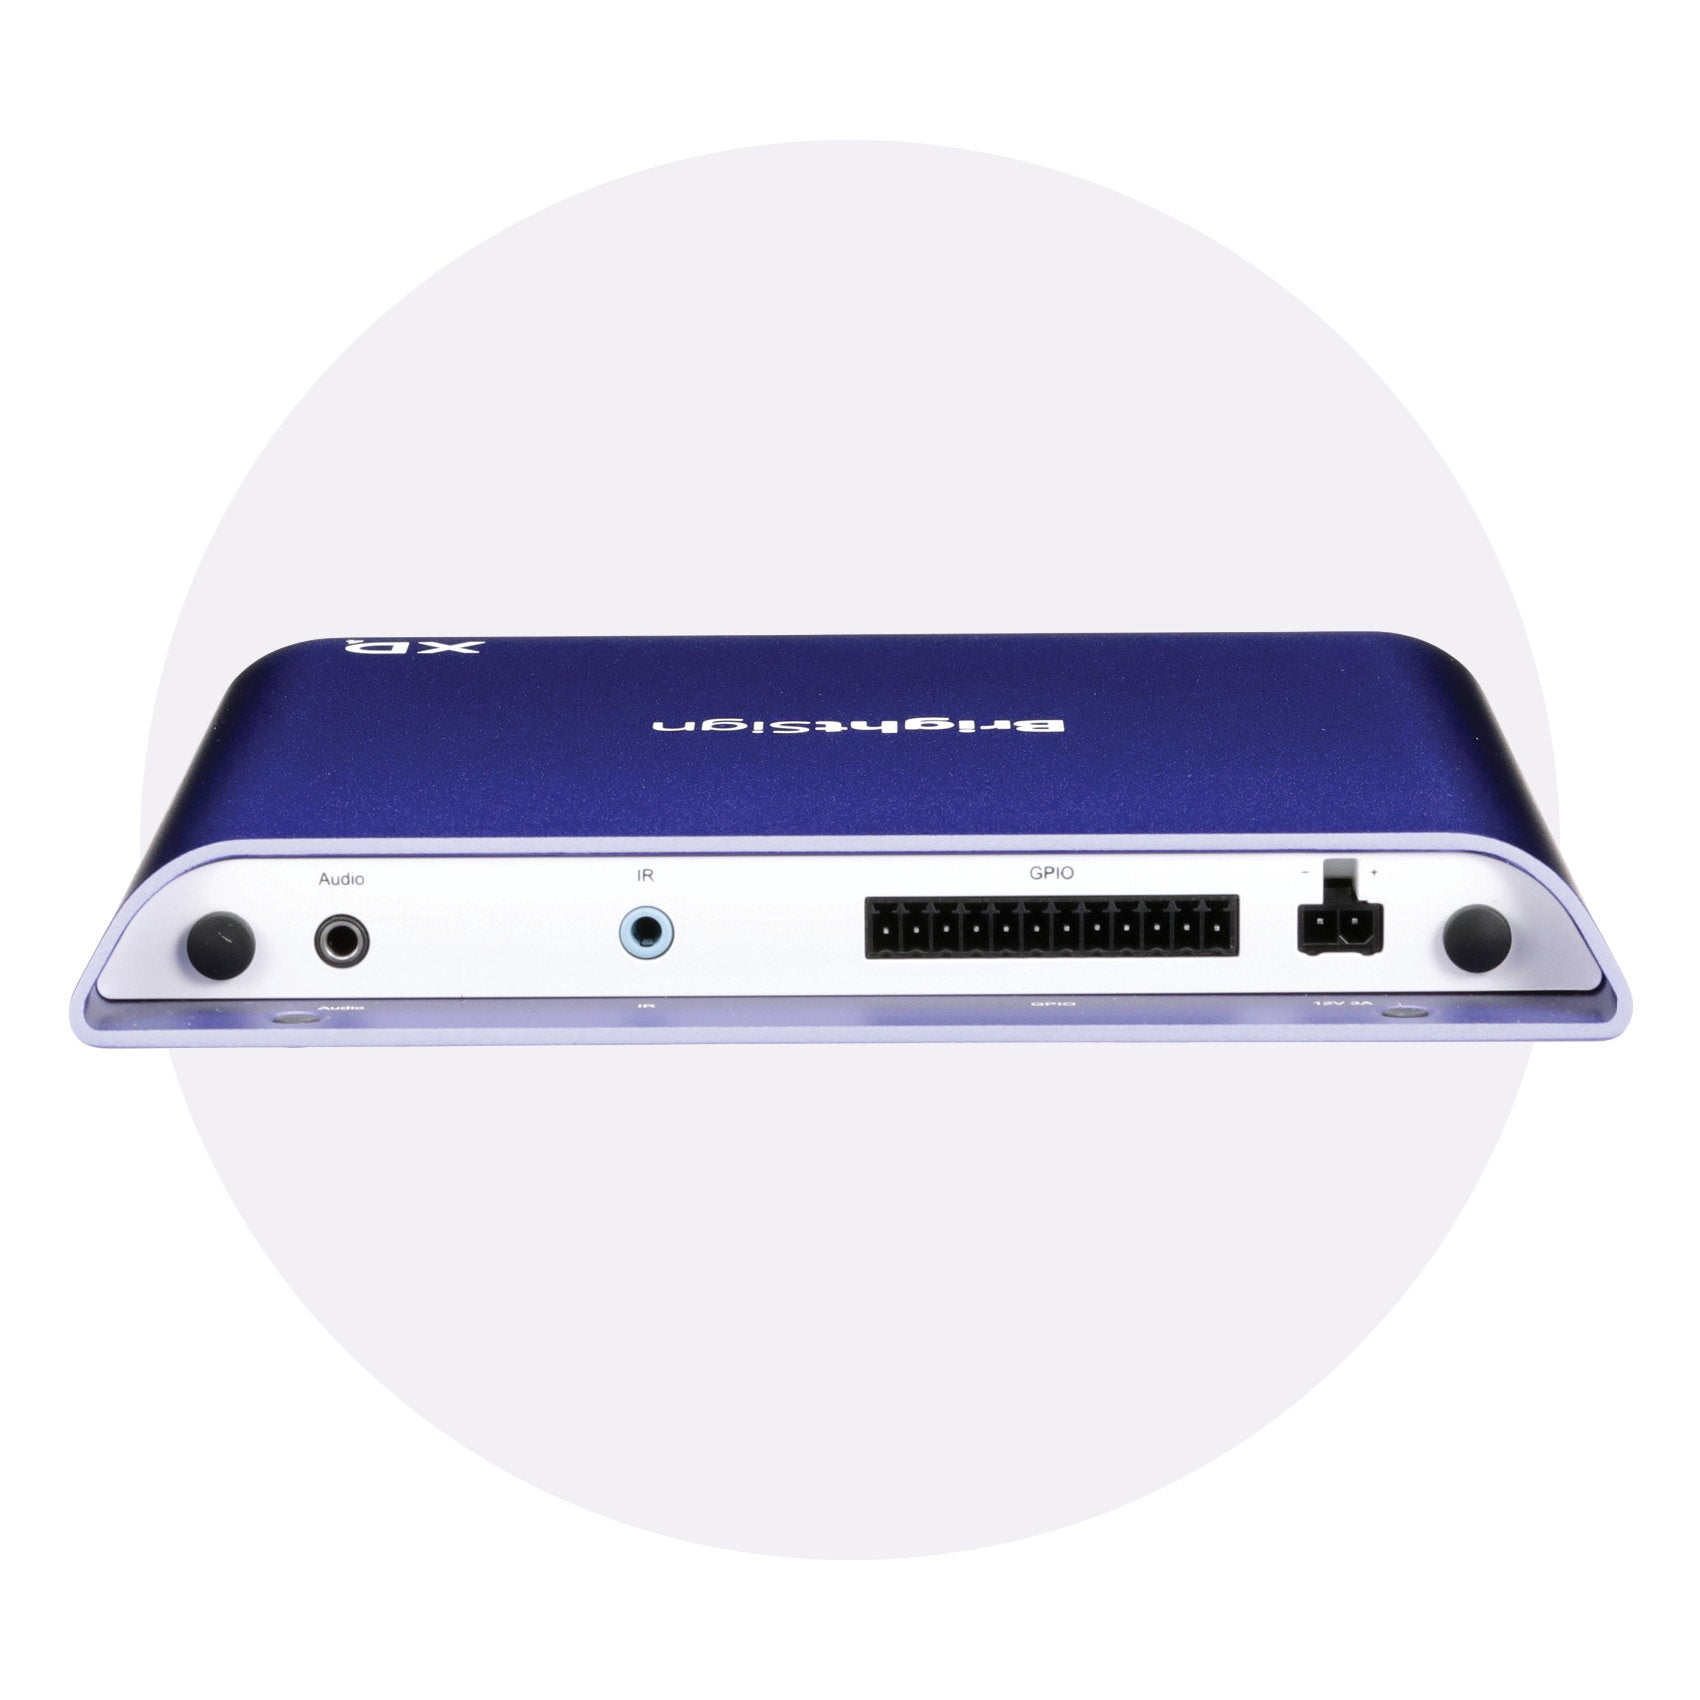 BrightSign XD234 Standard I/O Media Player